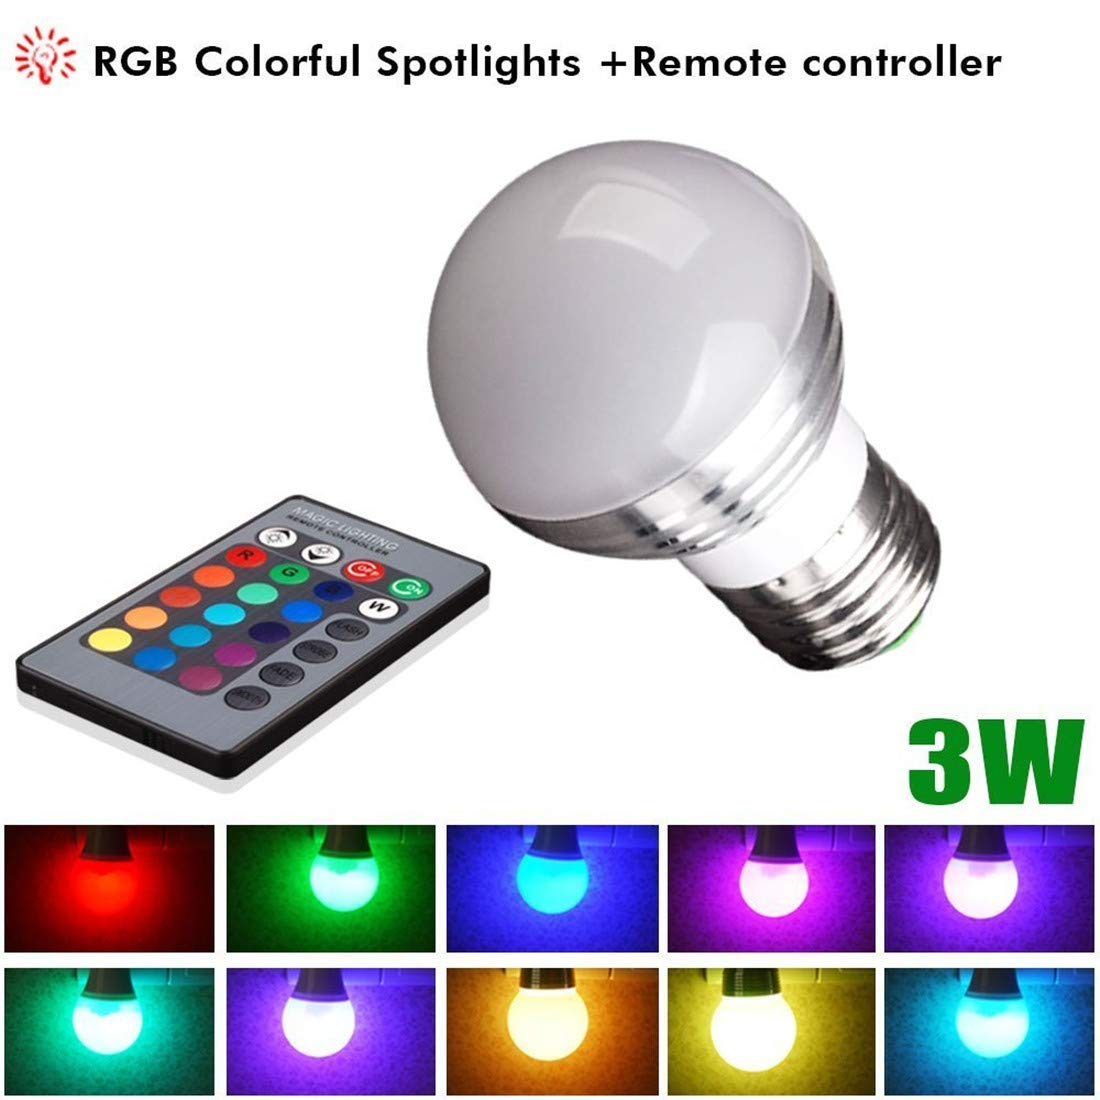 BOLWEO [4 Pack] Color Changing Light Bulb with Remote, E26 E27 Base 3W 16 Colored RGB LED Dimmable Mood Light Flood Light Bulbs Energy Saving Lamps for Home, Bar, Party, KTV